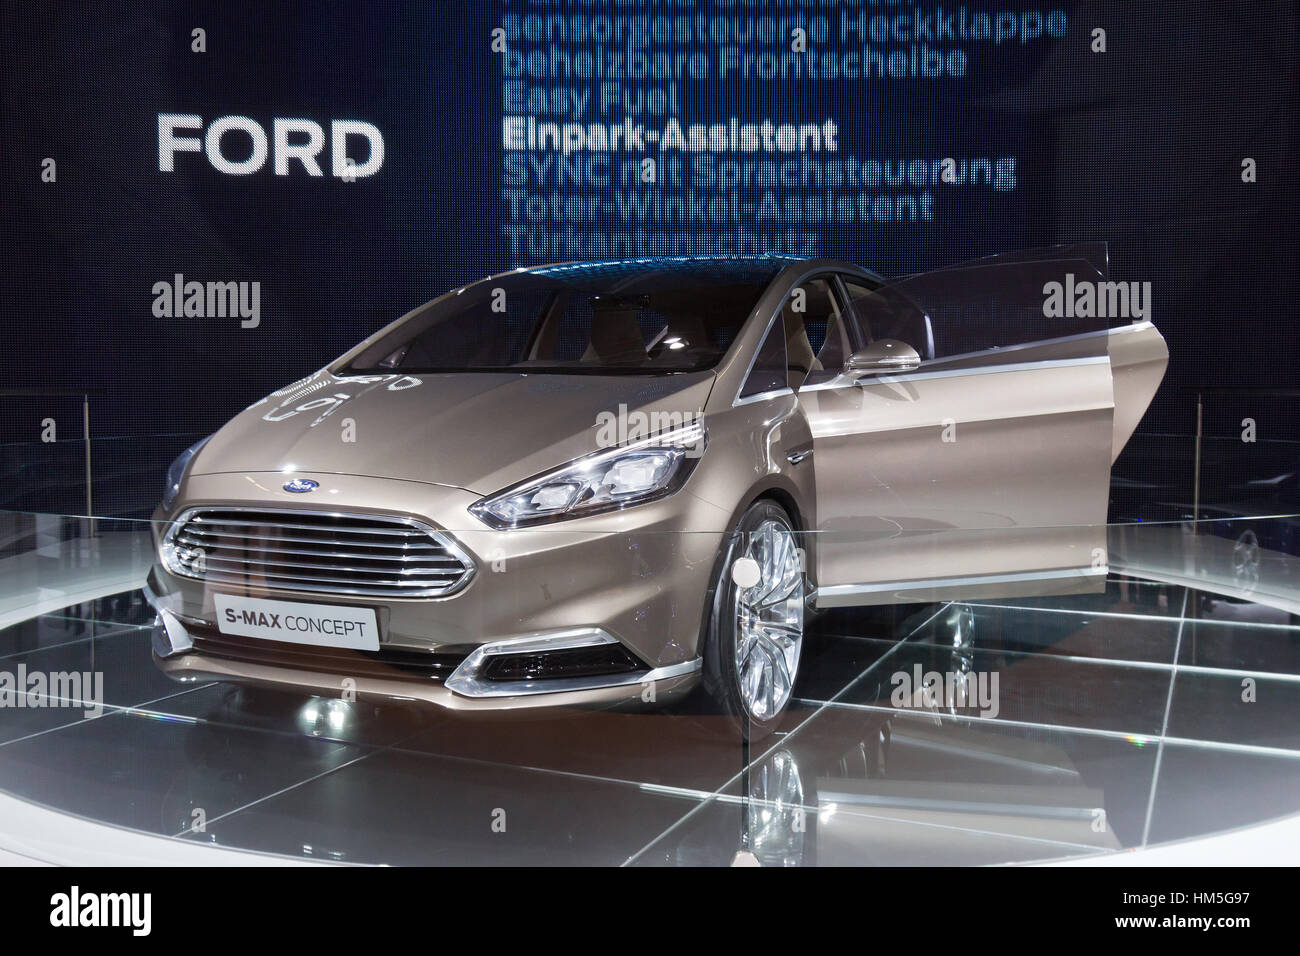 FRANKFURT, GERMANY - SEP 13: Ford S-Max Concept at the IAA motor show on Sep 13, 2013 in Frankfurt. More than 1.000 - Stock Image